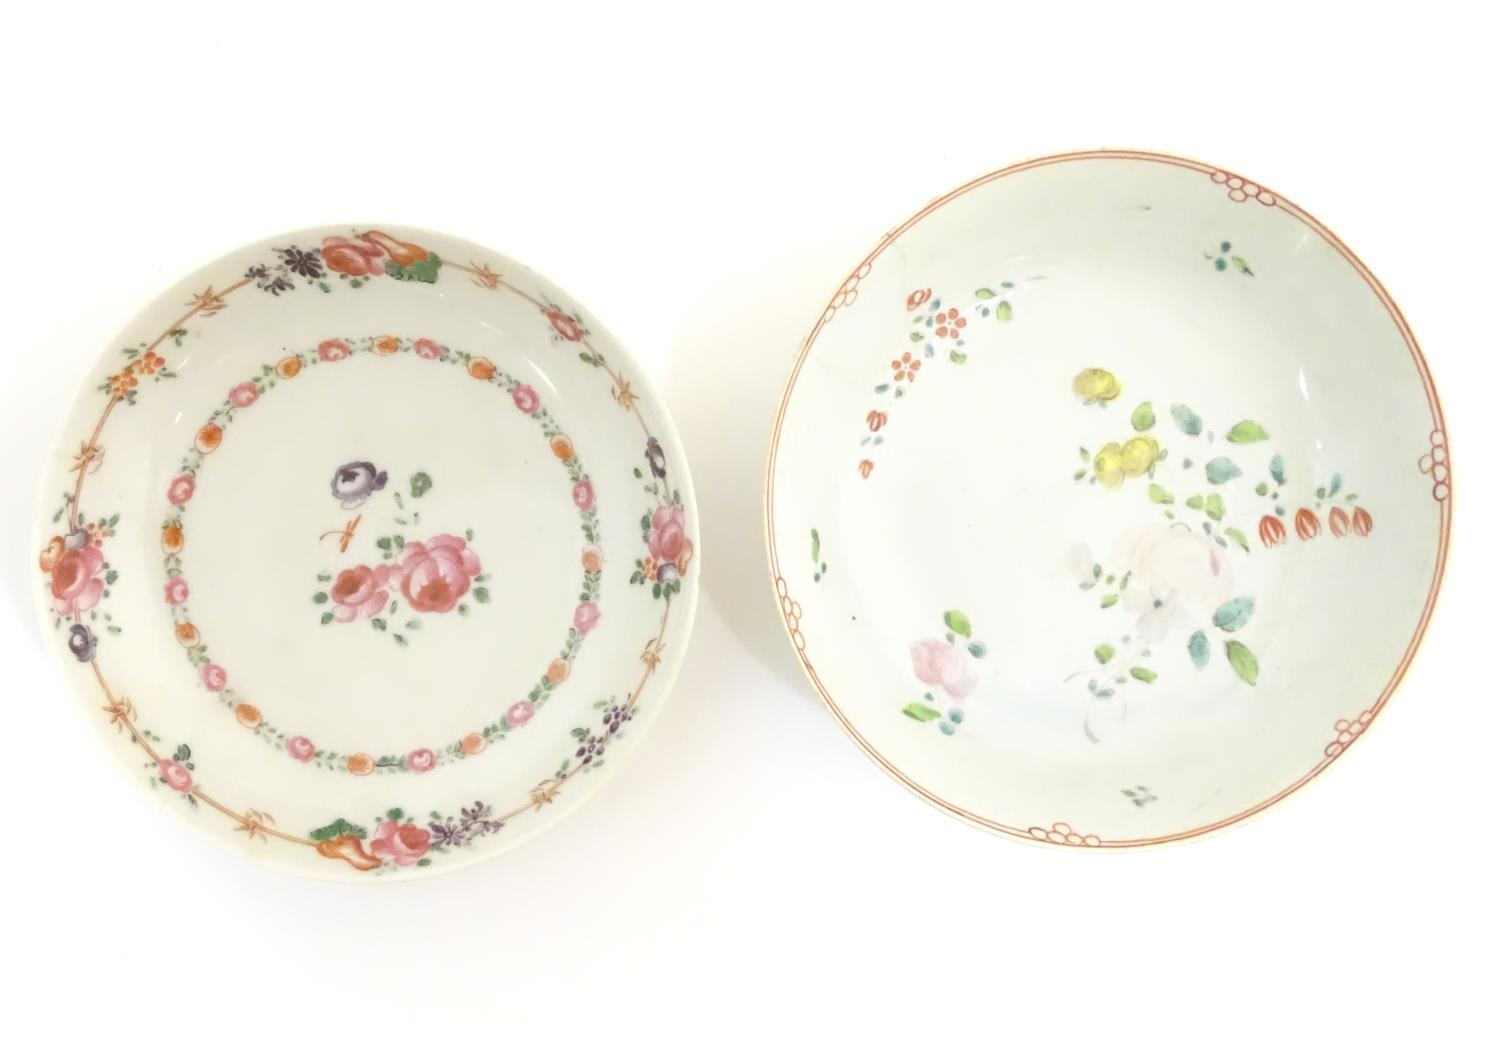 A New Hall style saucer with hand painted floral and foliate detail. Together with another. - Image 4 of 18